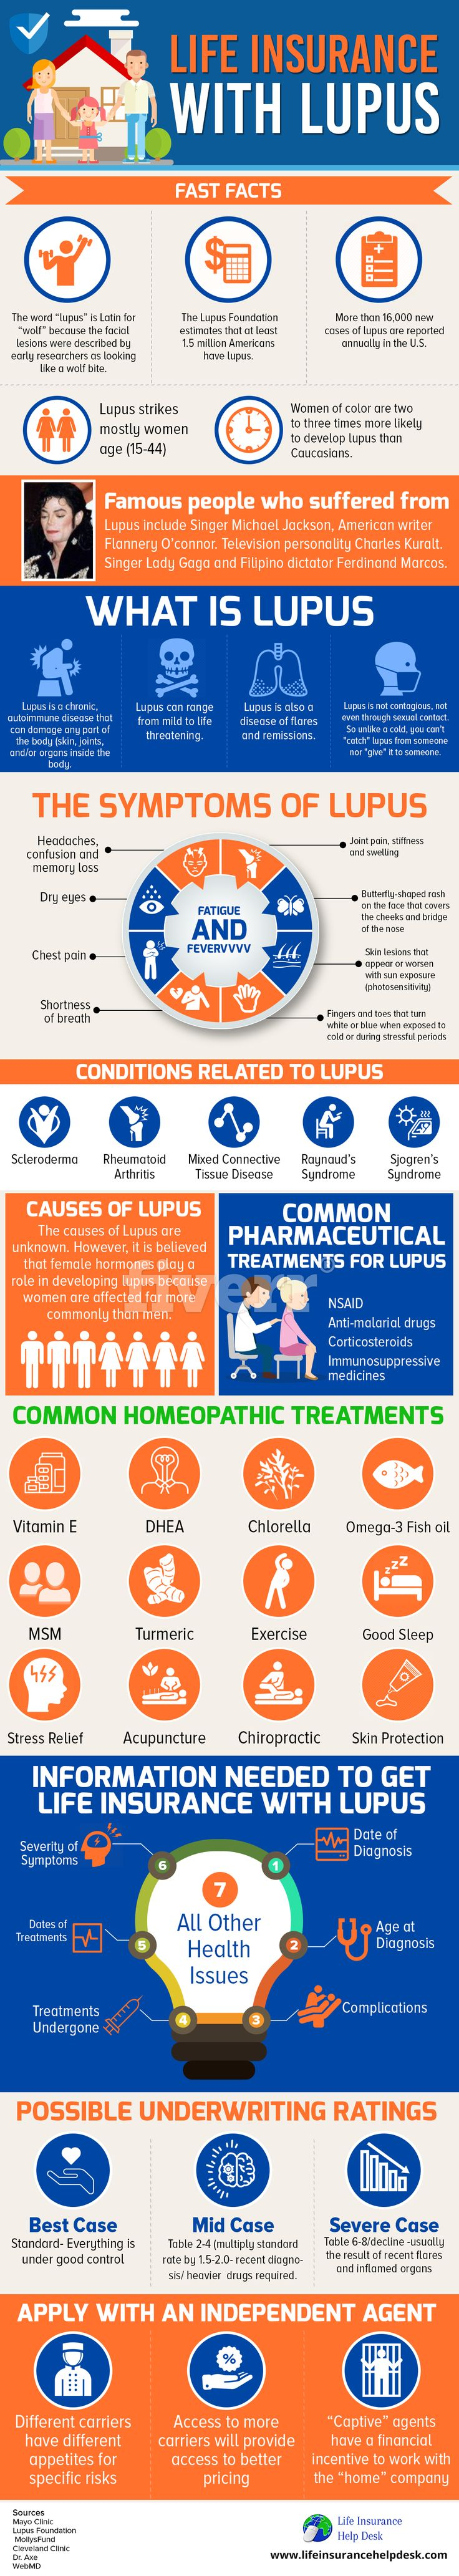 Life Insurance With Lupus - Lupus symptoms, risk factors, common treatments, life insurance with Lupus, and possible rates. (203) 424-1100.